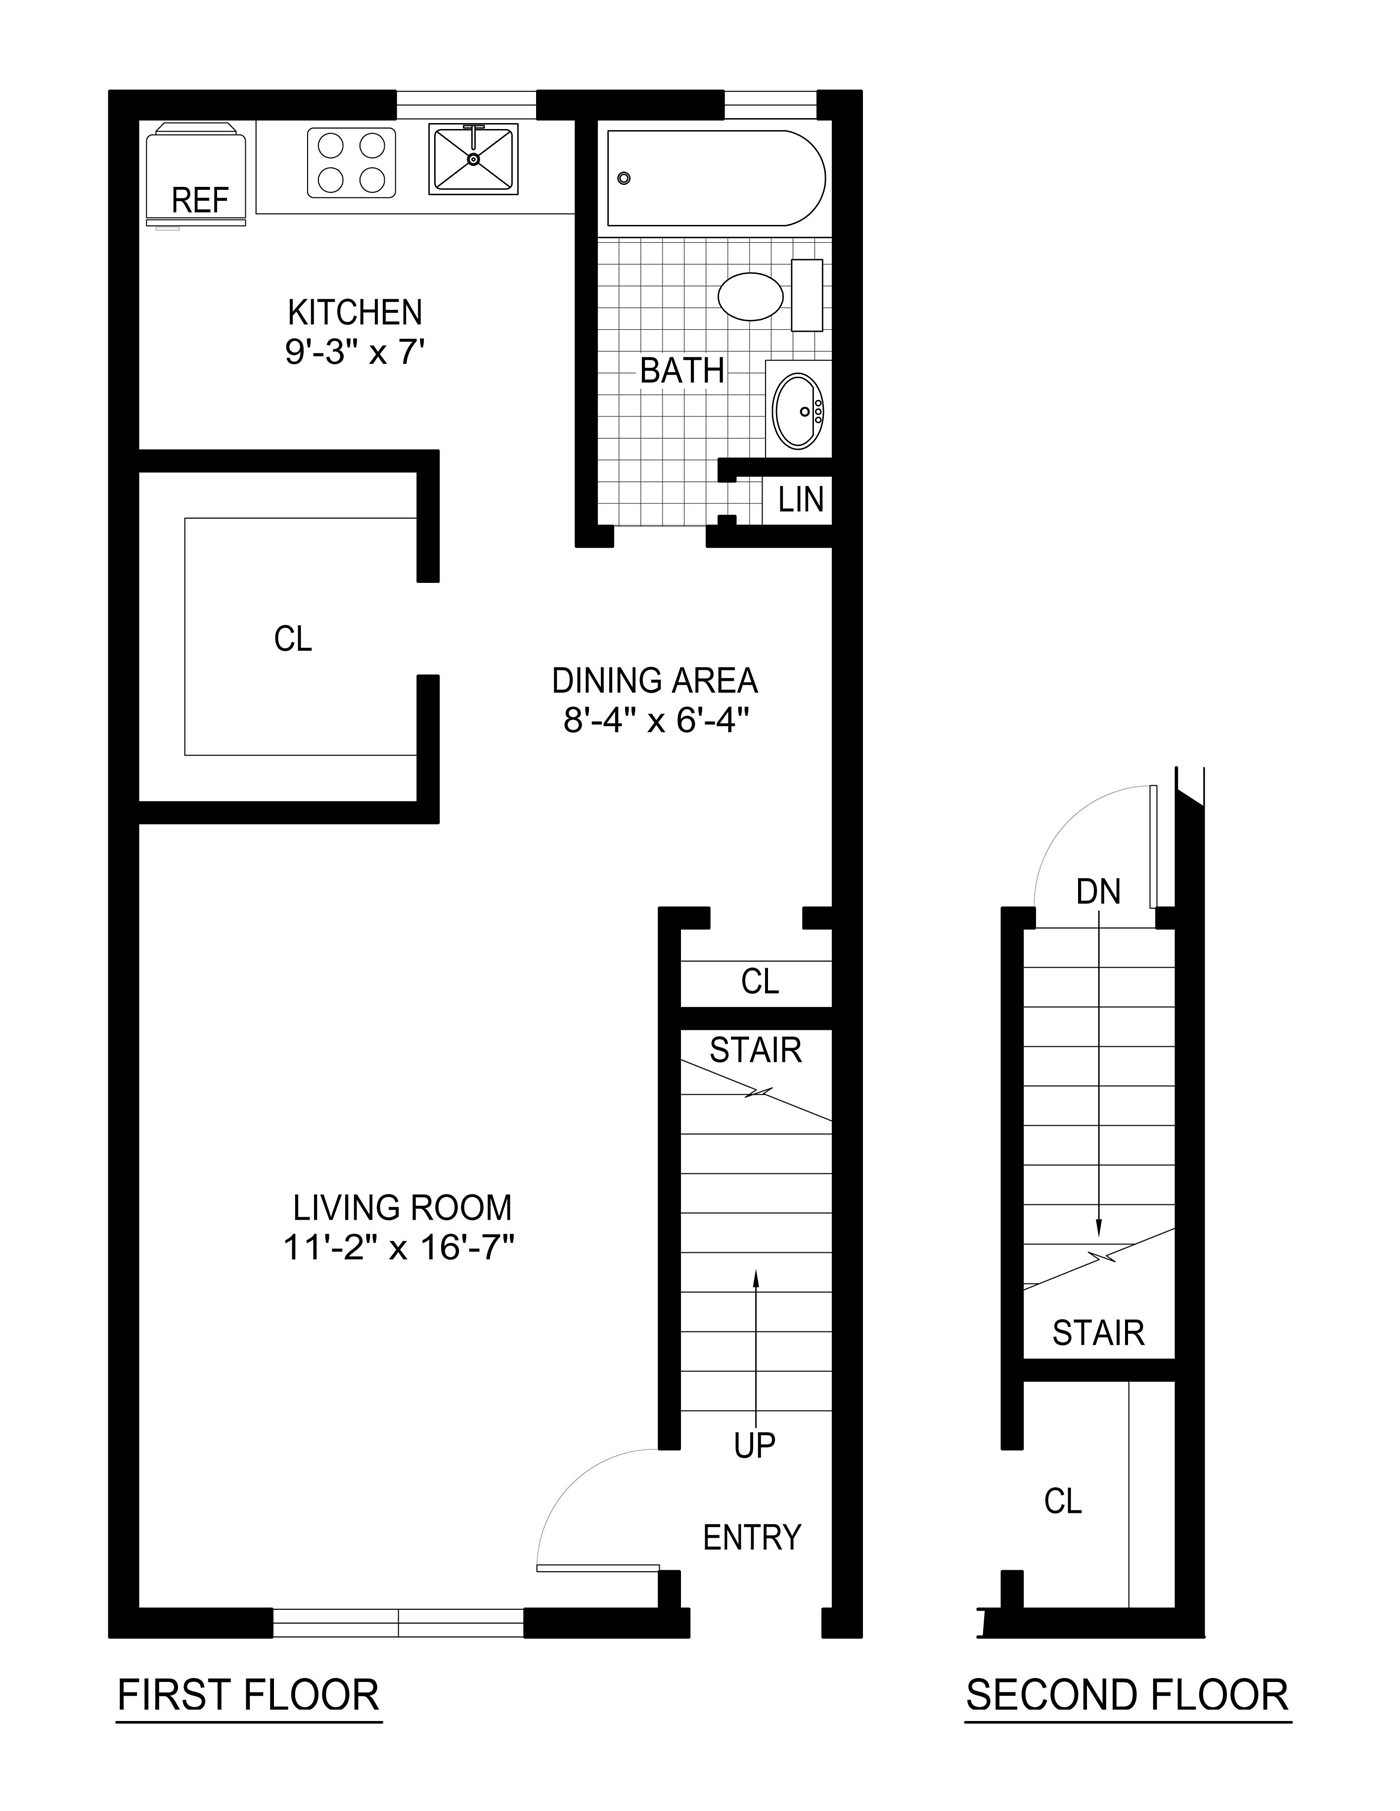 Apartment floor plans clipart panda free clipart images for Simple apartment plans